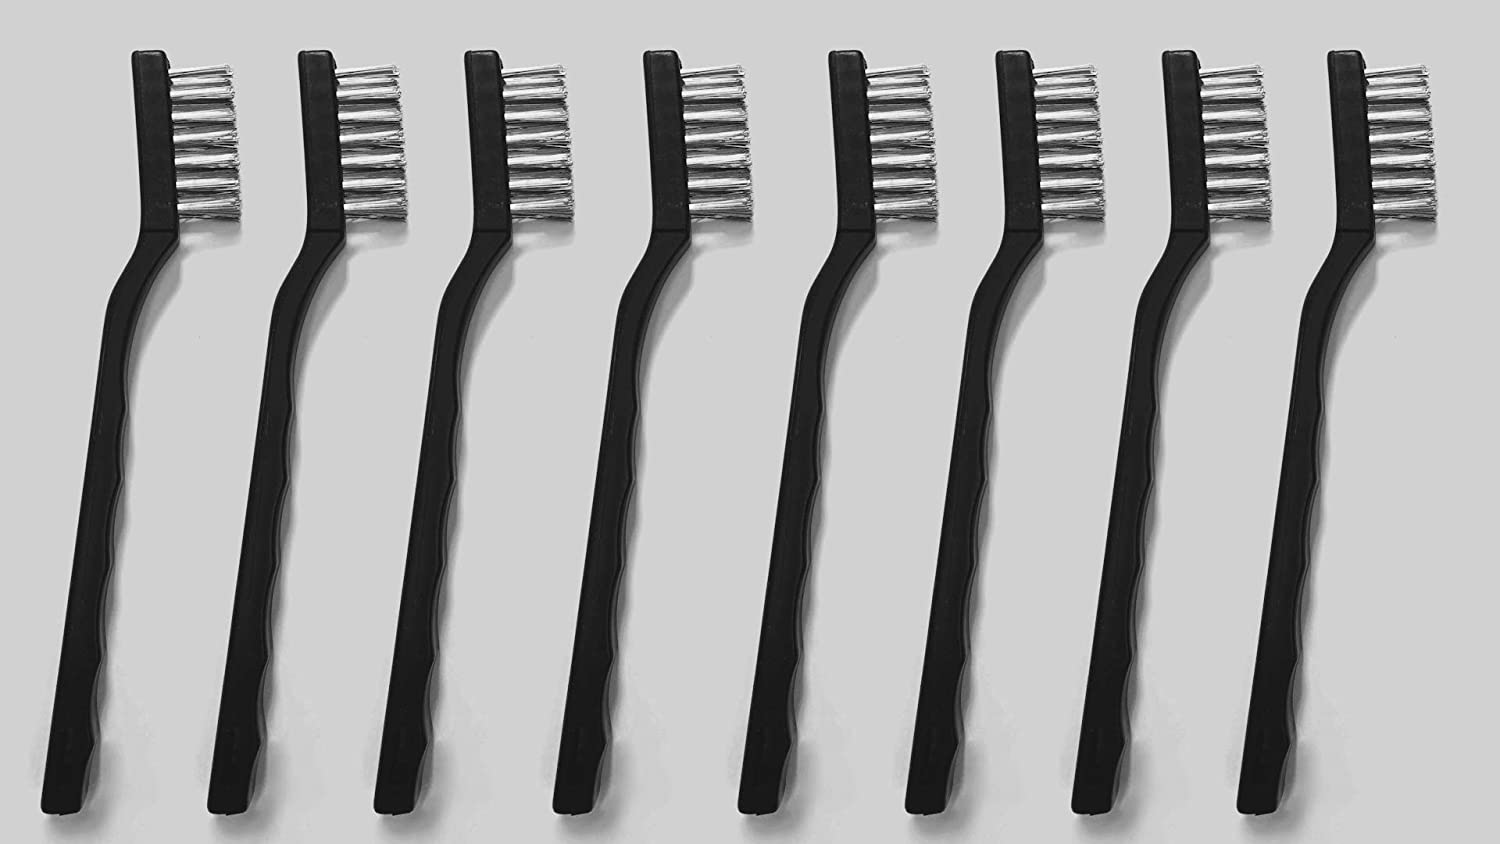 MILITARIA Stainless Steel Bristles Utility Seasonal High material Wrap Introduction Non-Corrosive Head Br